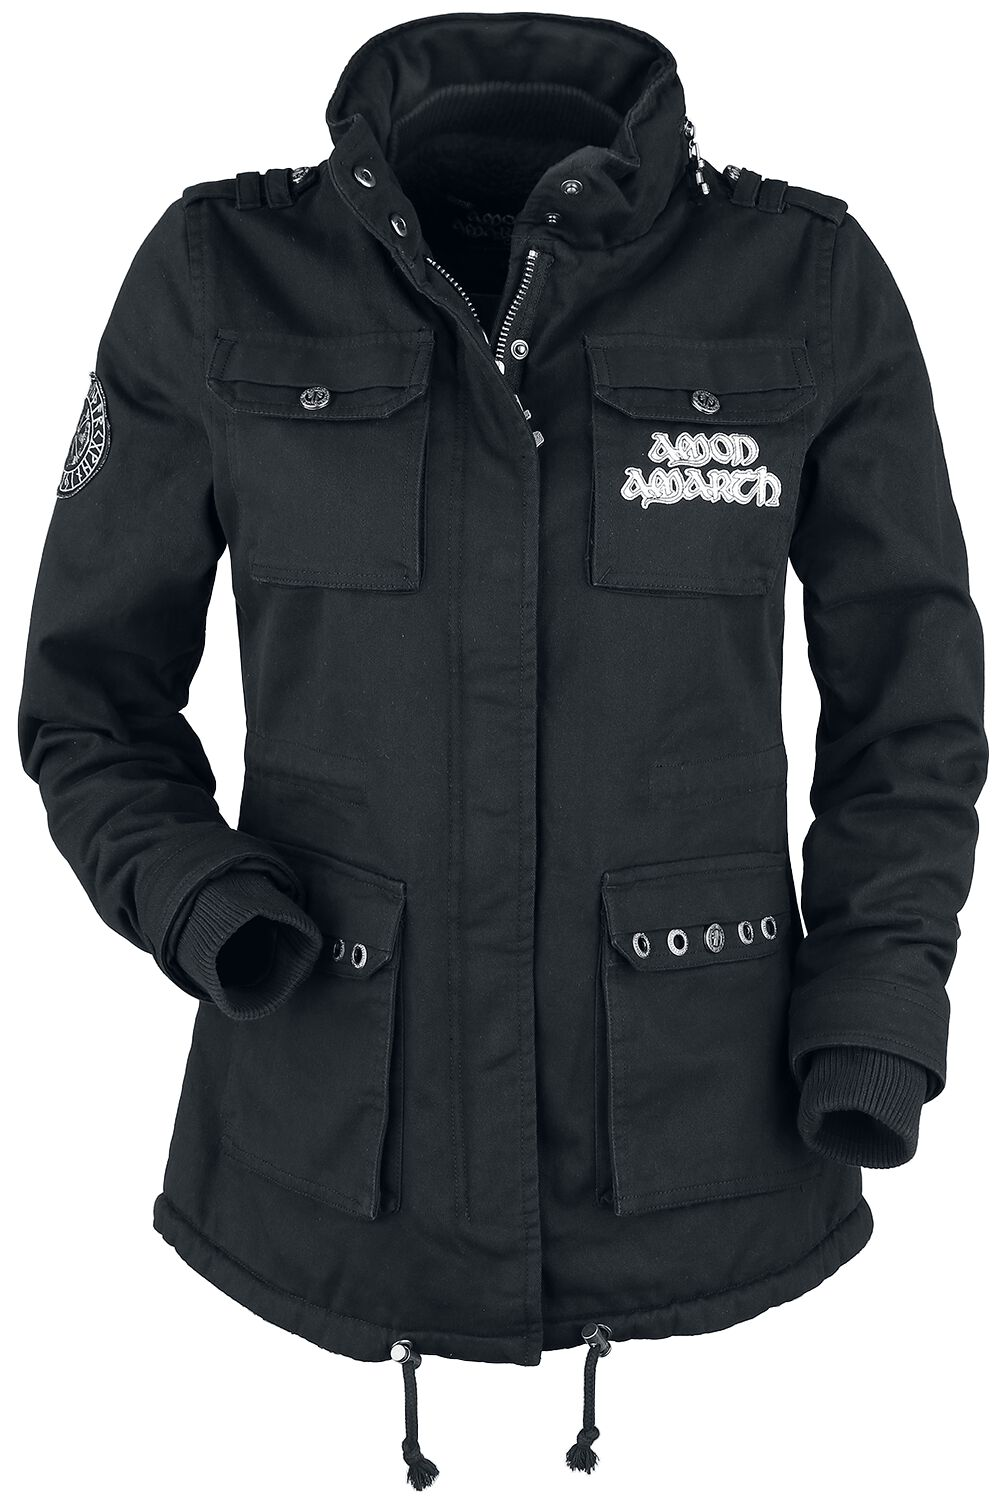 Jacken - Amon Amarth EMP Signature Collection Winterjacke schwarz  - Onlineshop EMP